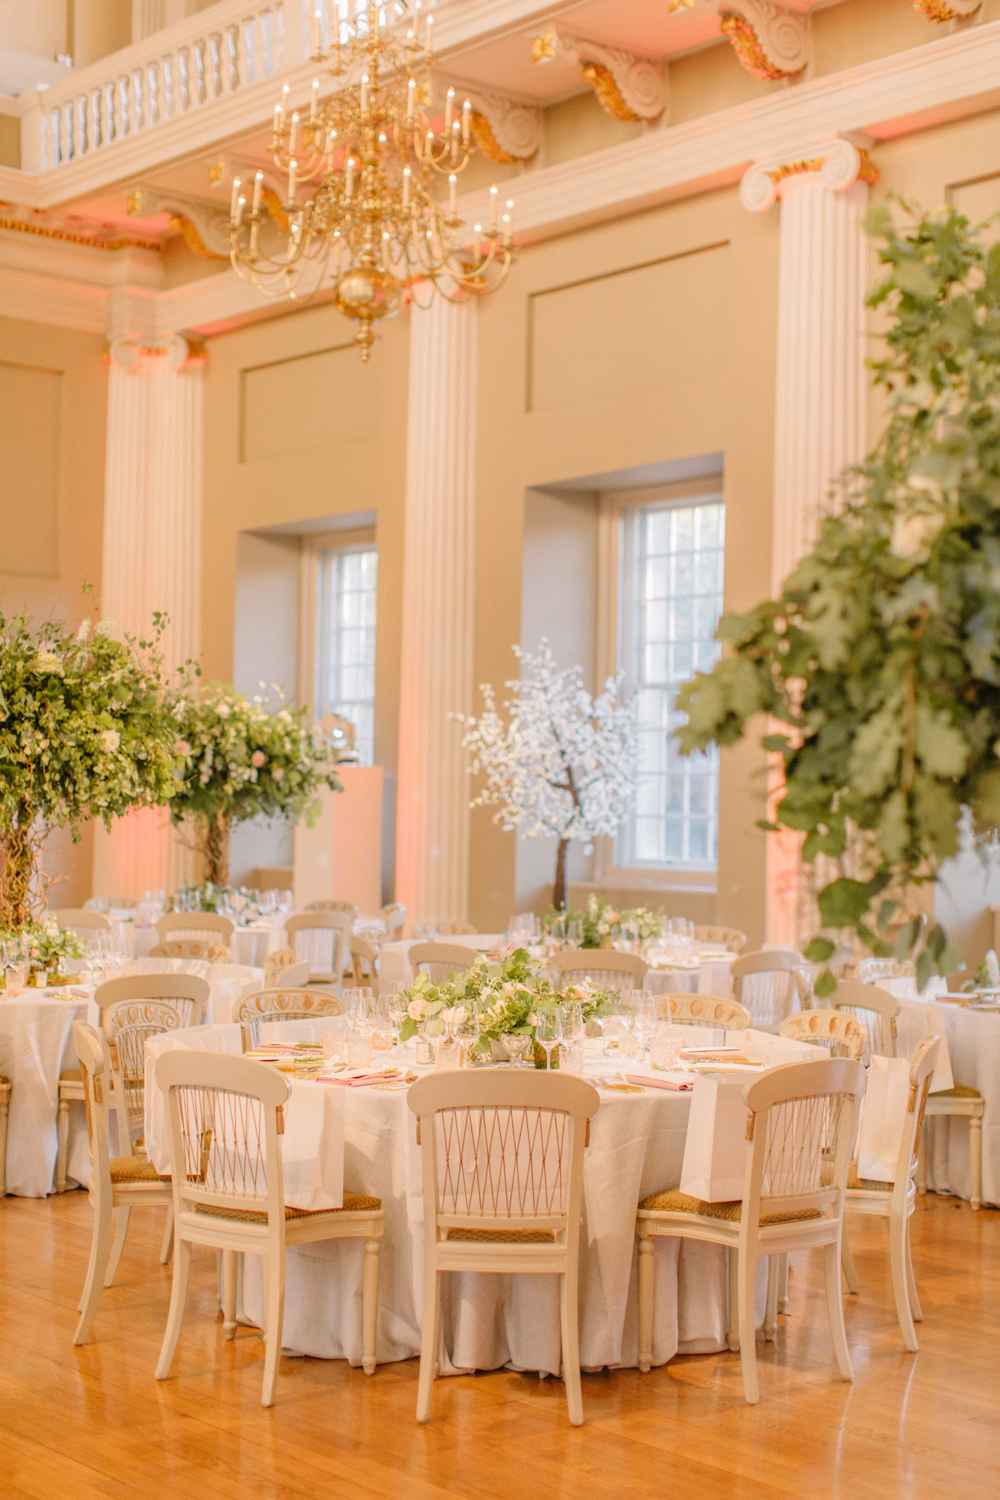 5 | Banqueting_House_Wedding_Holly_Clark_Photography_Lamare_London.jpg